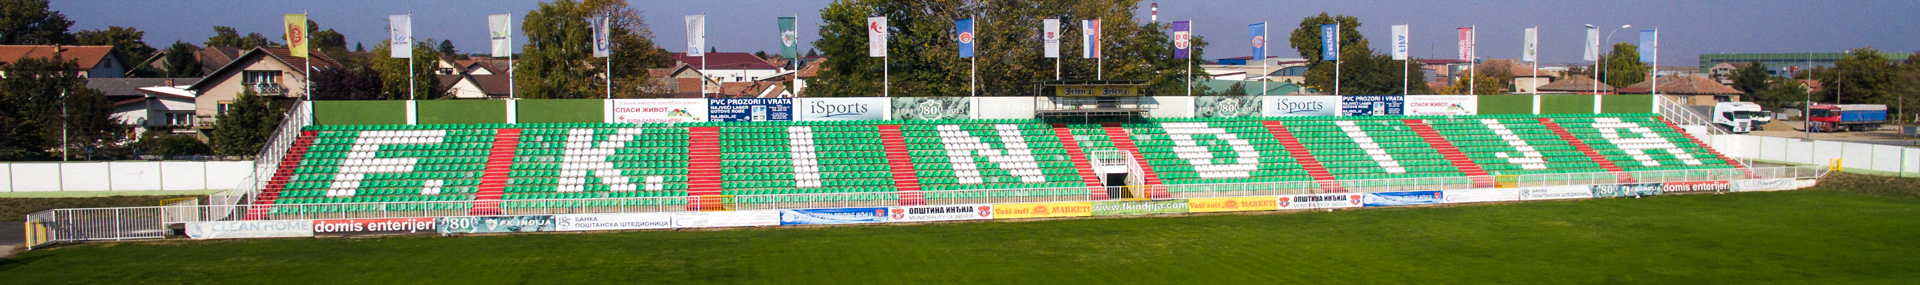 footer stadion